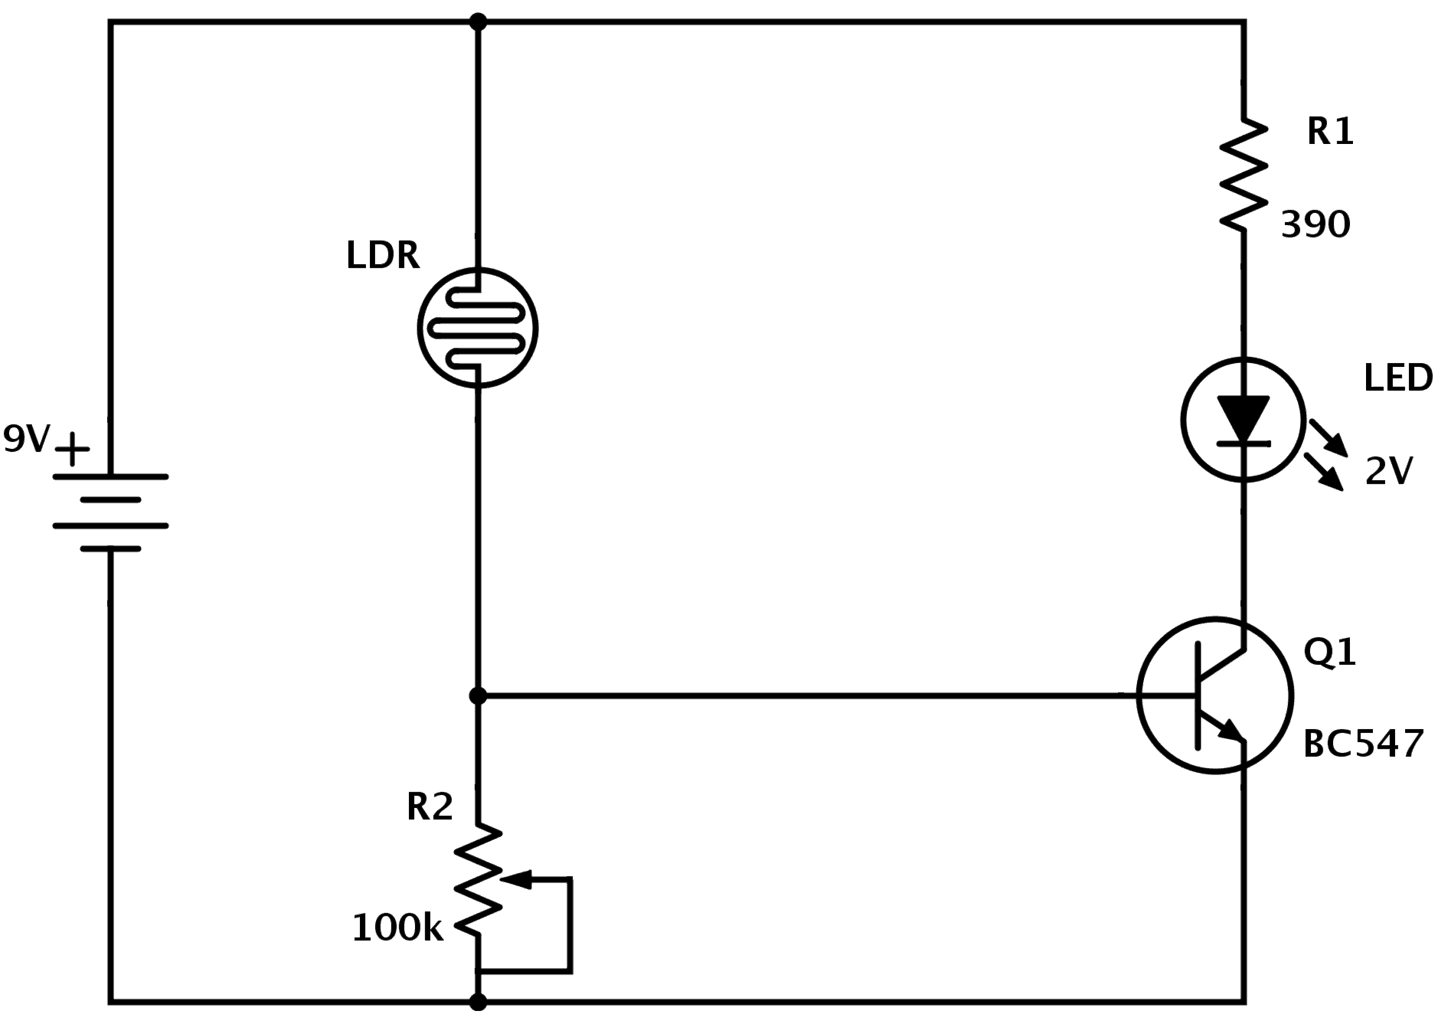 LDR circuit improved circuit diagram how to read and understand any schematic reading wiring diagrams at bakdesigns.co